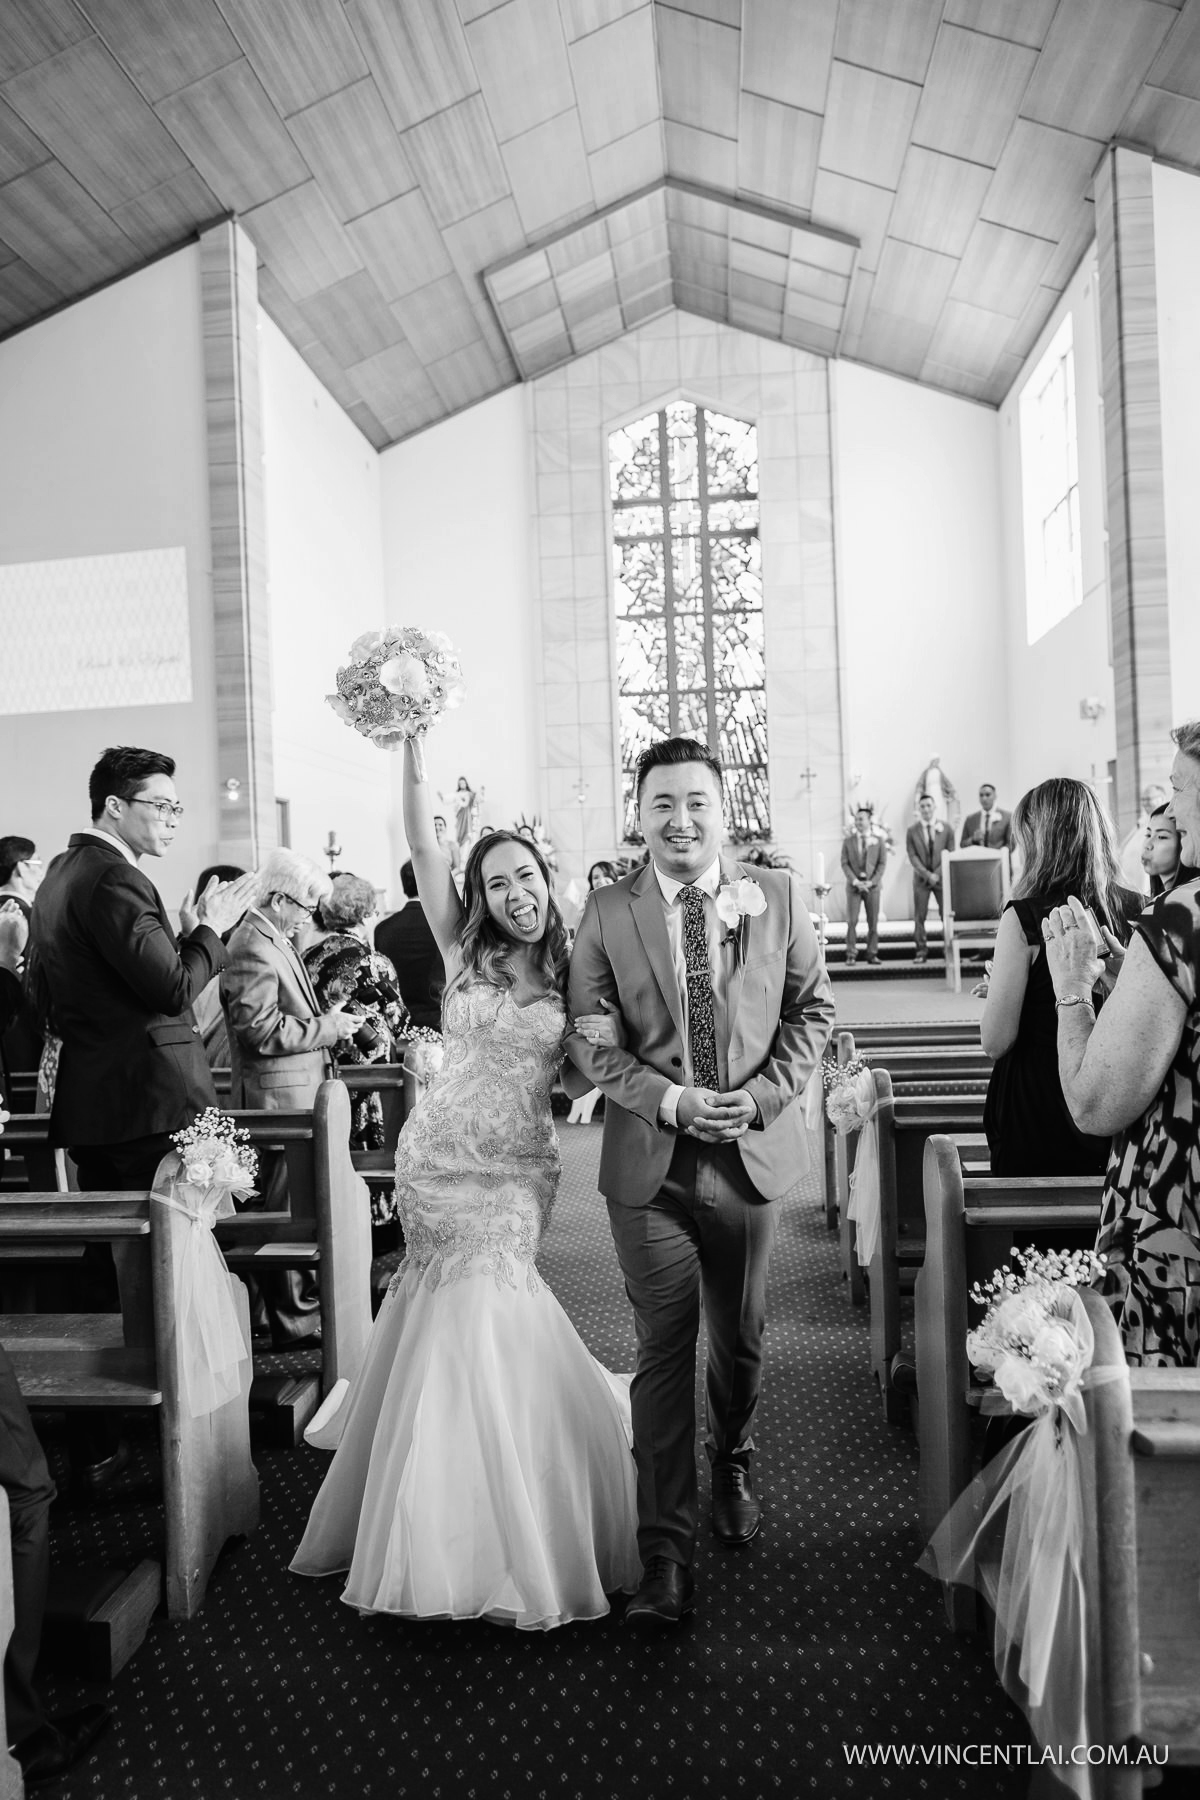 Wedding at St Jerome's Catholic Parish